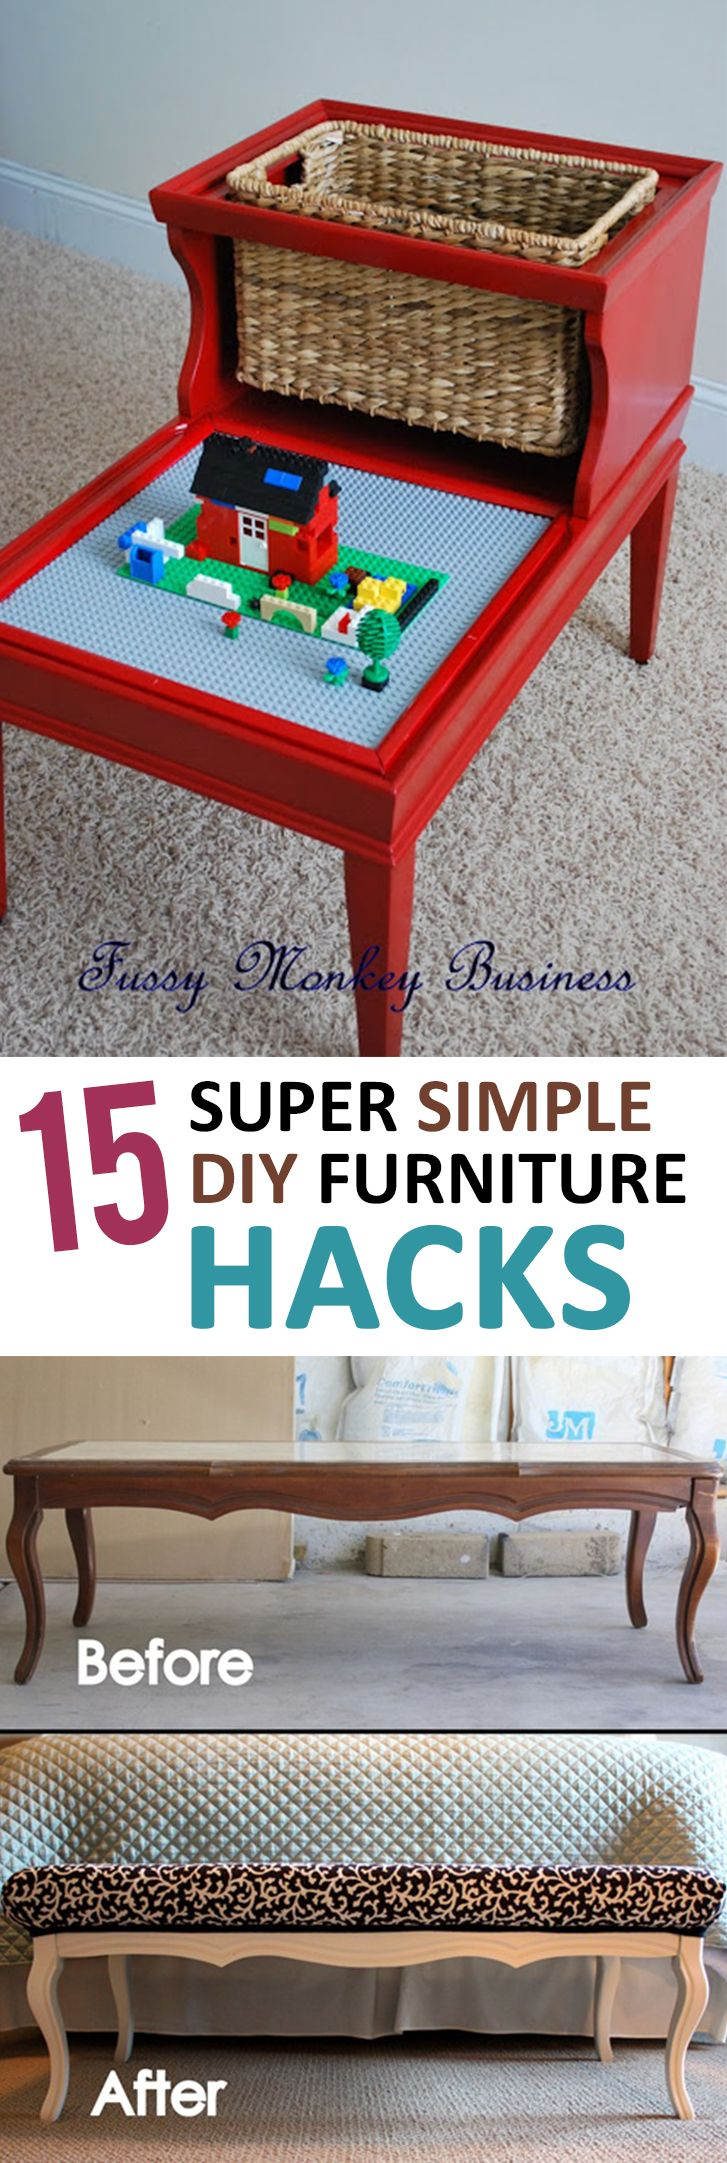 15 Super Simple DIY Furniture Hacks - http://sunlitspaces.com/2017/01/10/15-super-simple-diy-furniture-hacks/